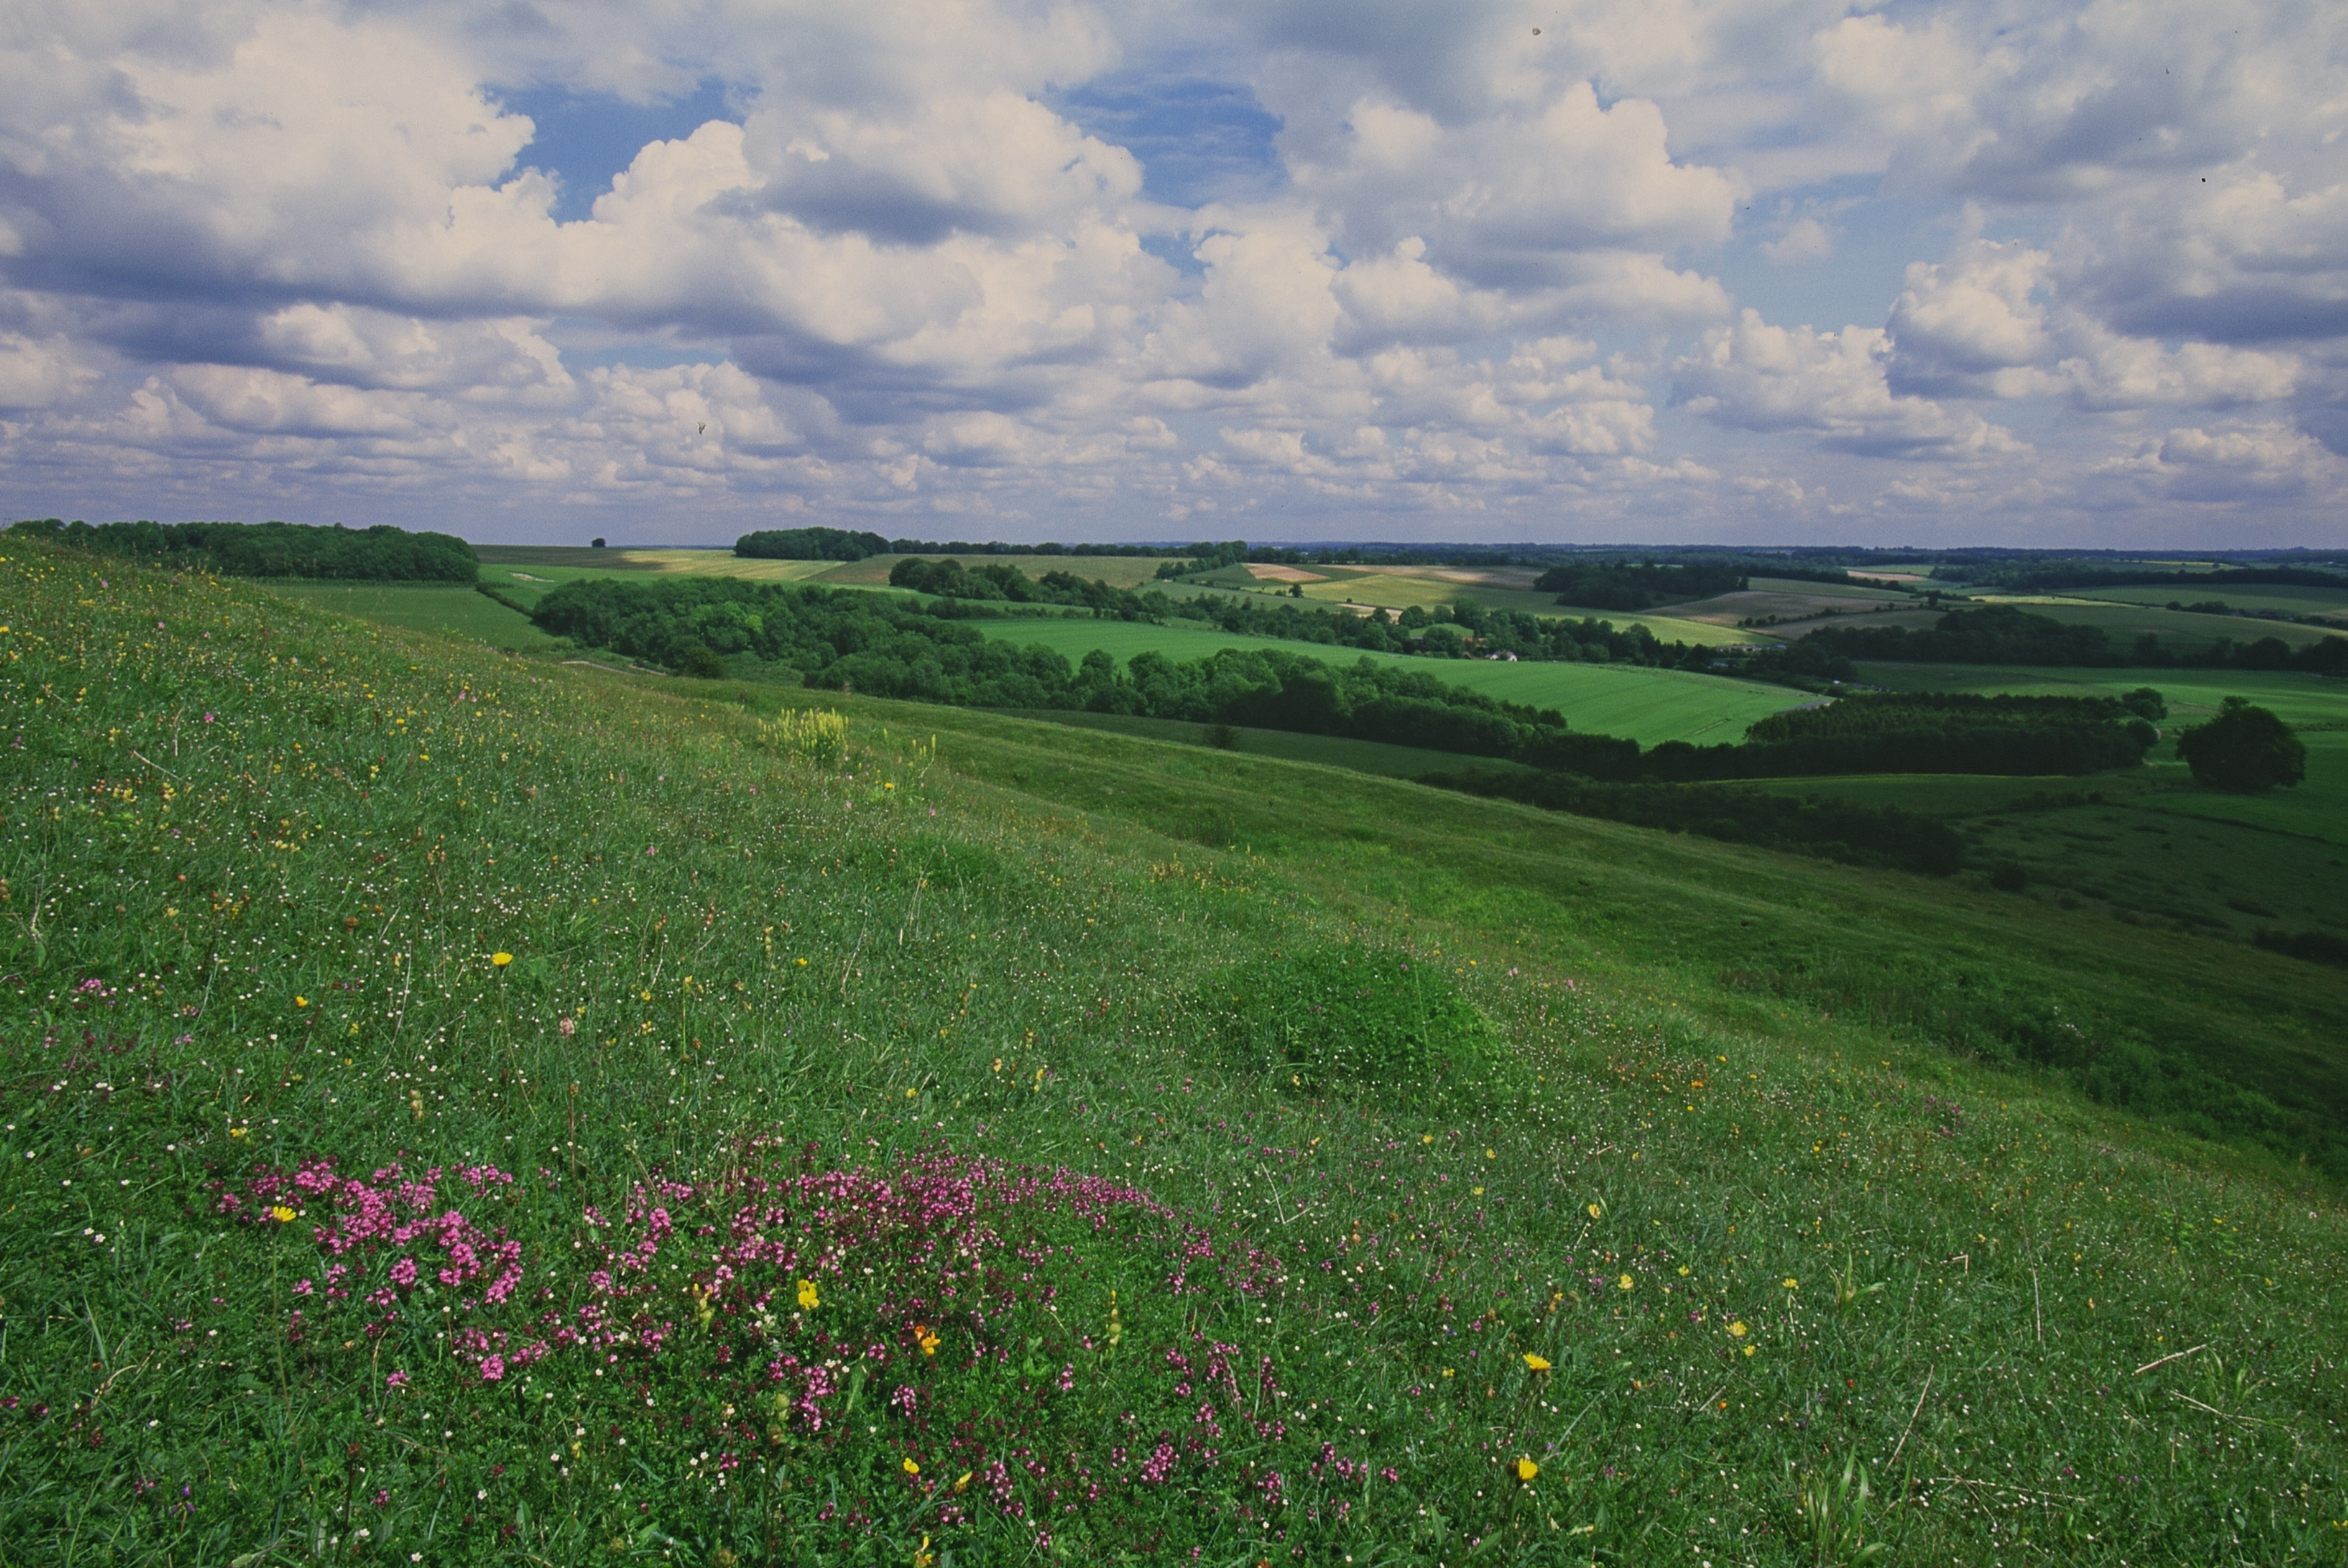 Flowers of thyme and other plants dot the grassland on this English chalk hillsides.